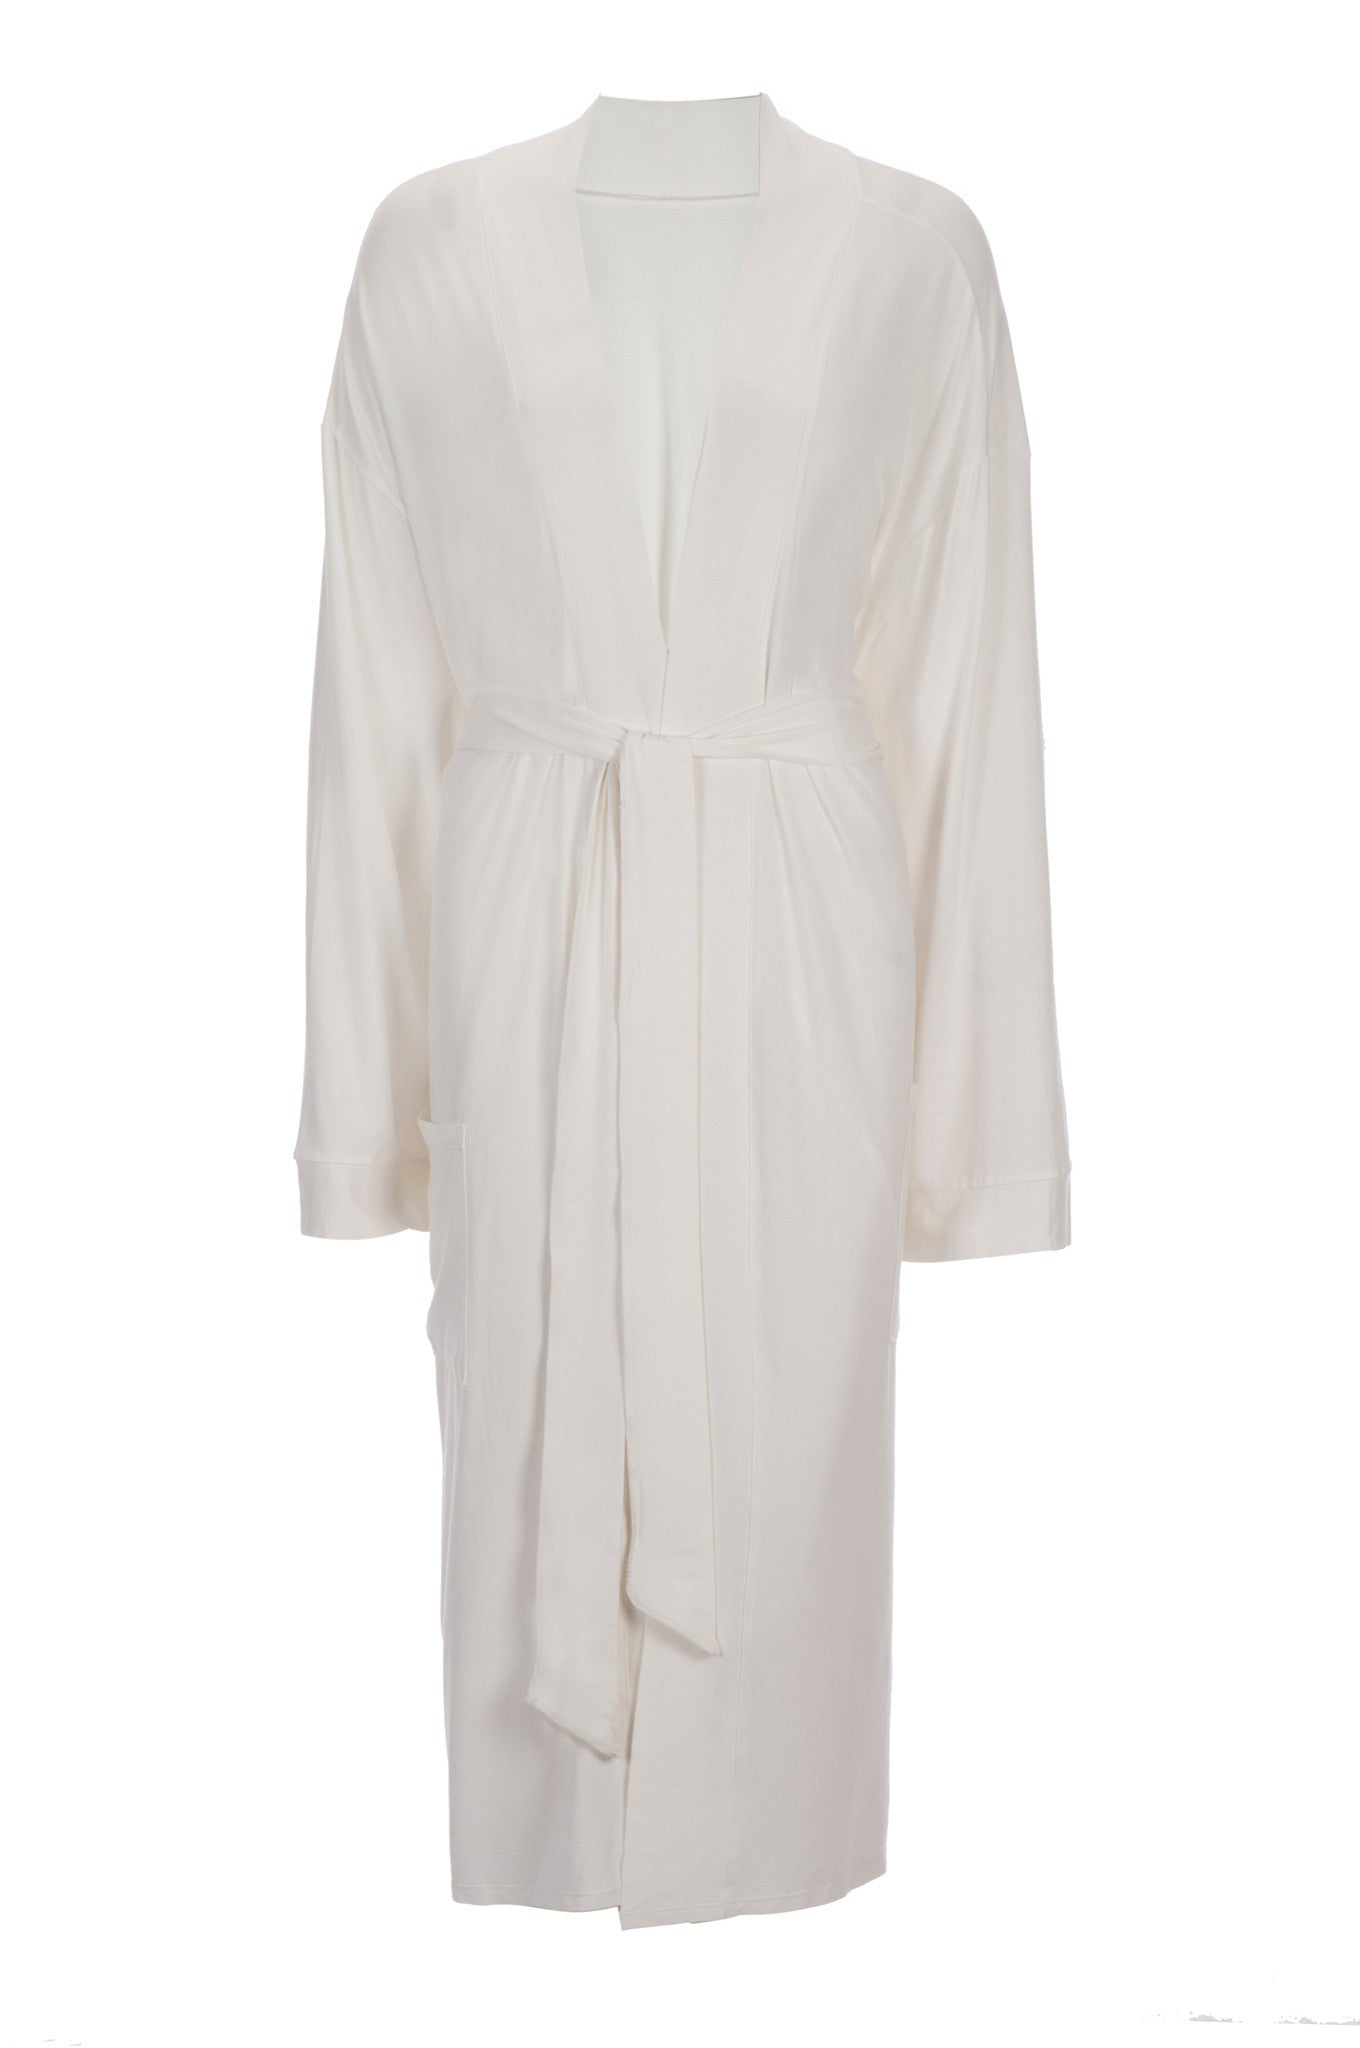 5afec8760c Bamboo Viscose Robe in Ivory-Bathrobes-Alan Decor